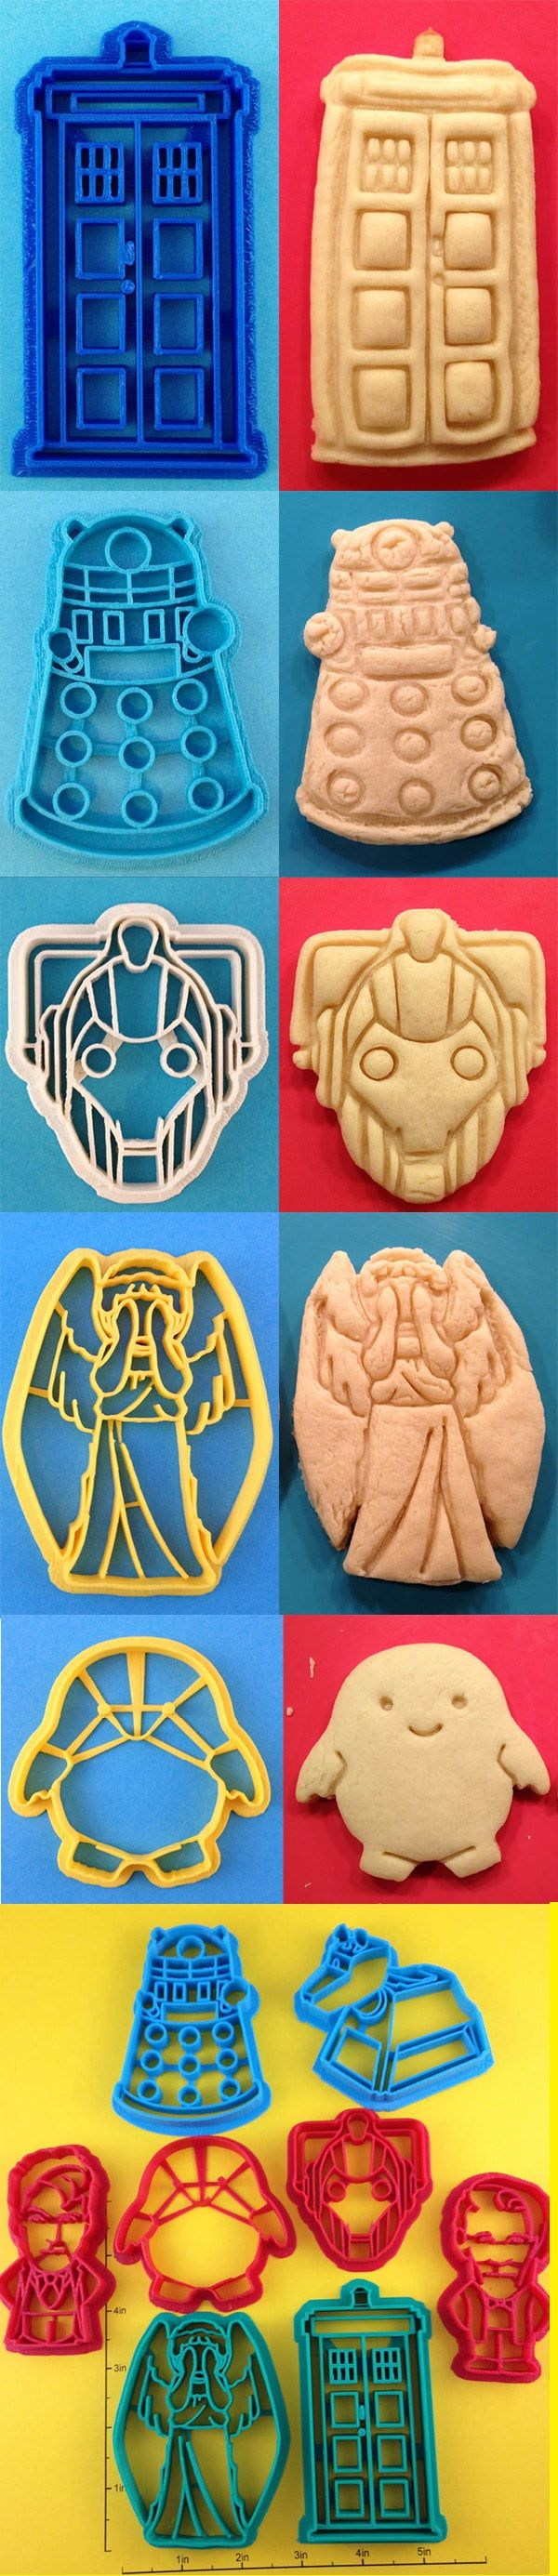 Dr. Who cookies!